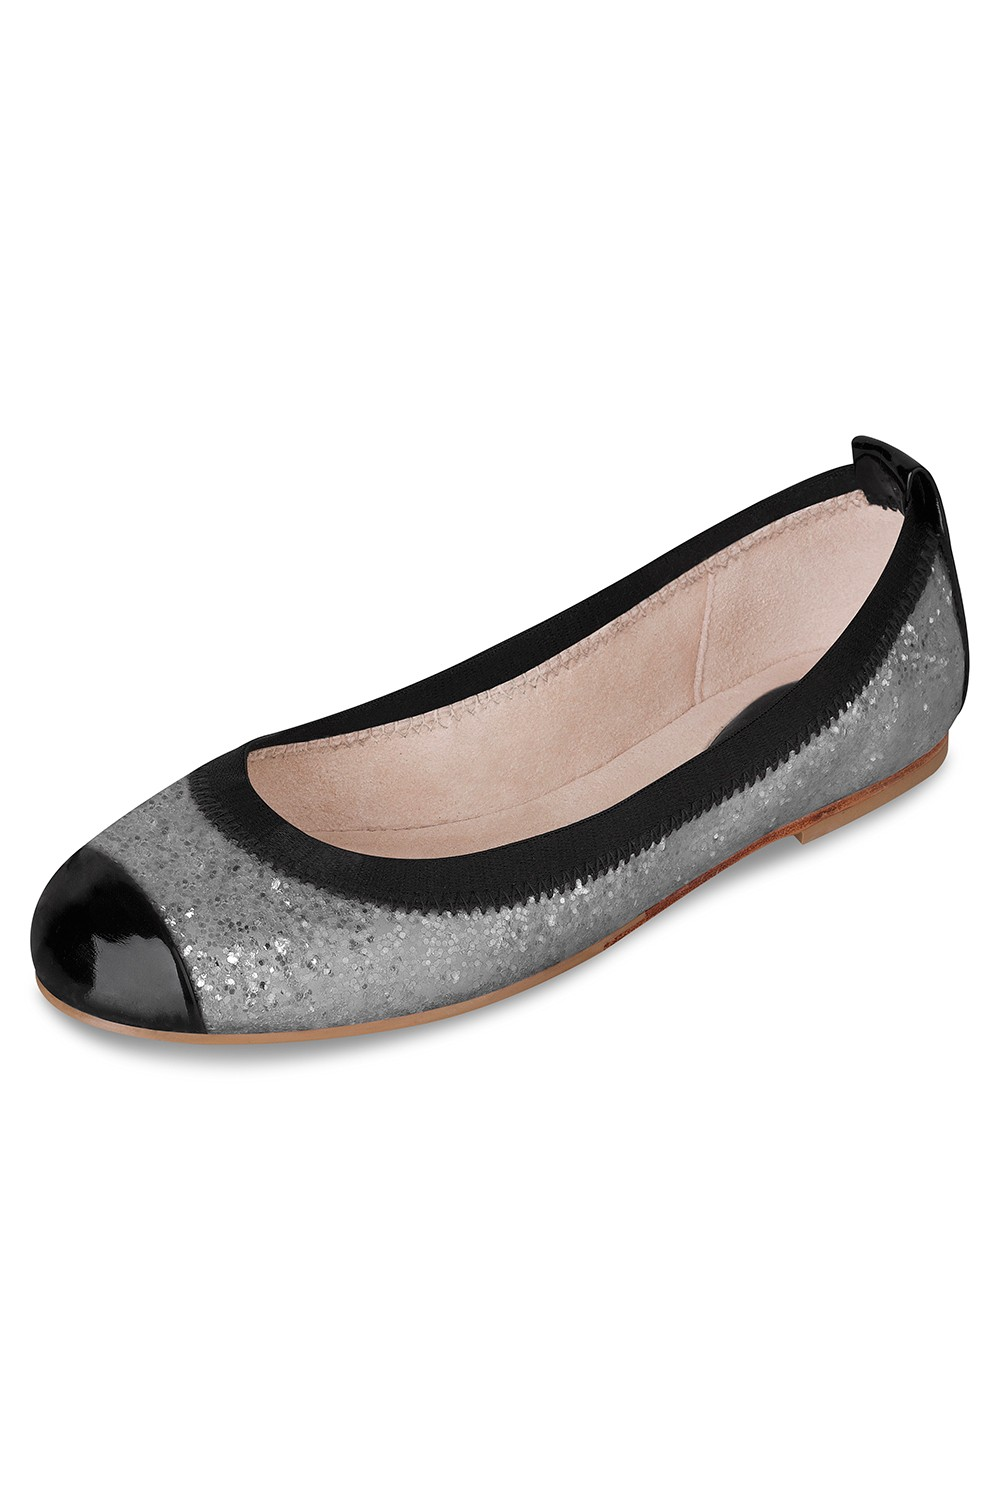 Elettra - Girls Girls Fashion Shoes